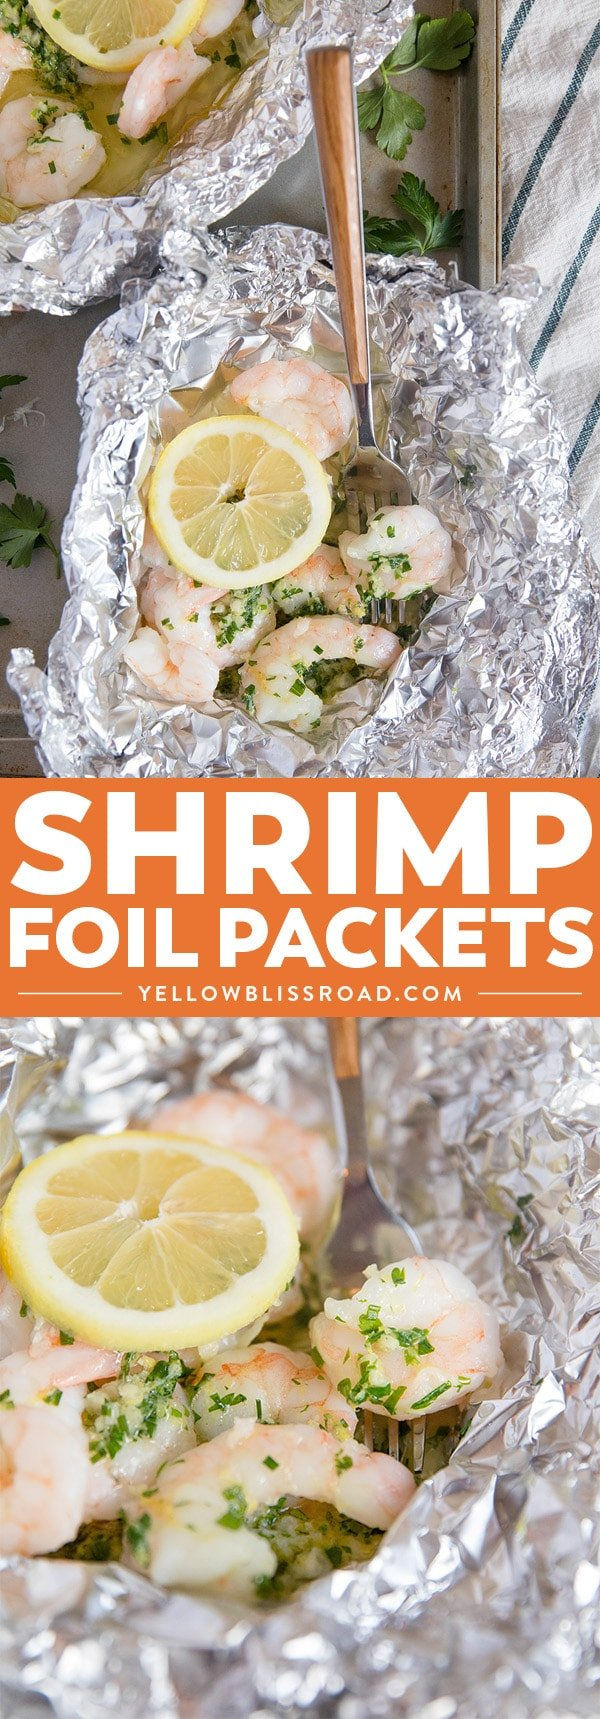 Shrimp Foil Packets in the oven with Lemon Herb Butter | Grilled Shrimp Foil Packets (collage)